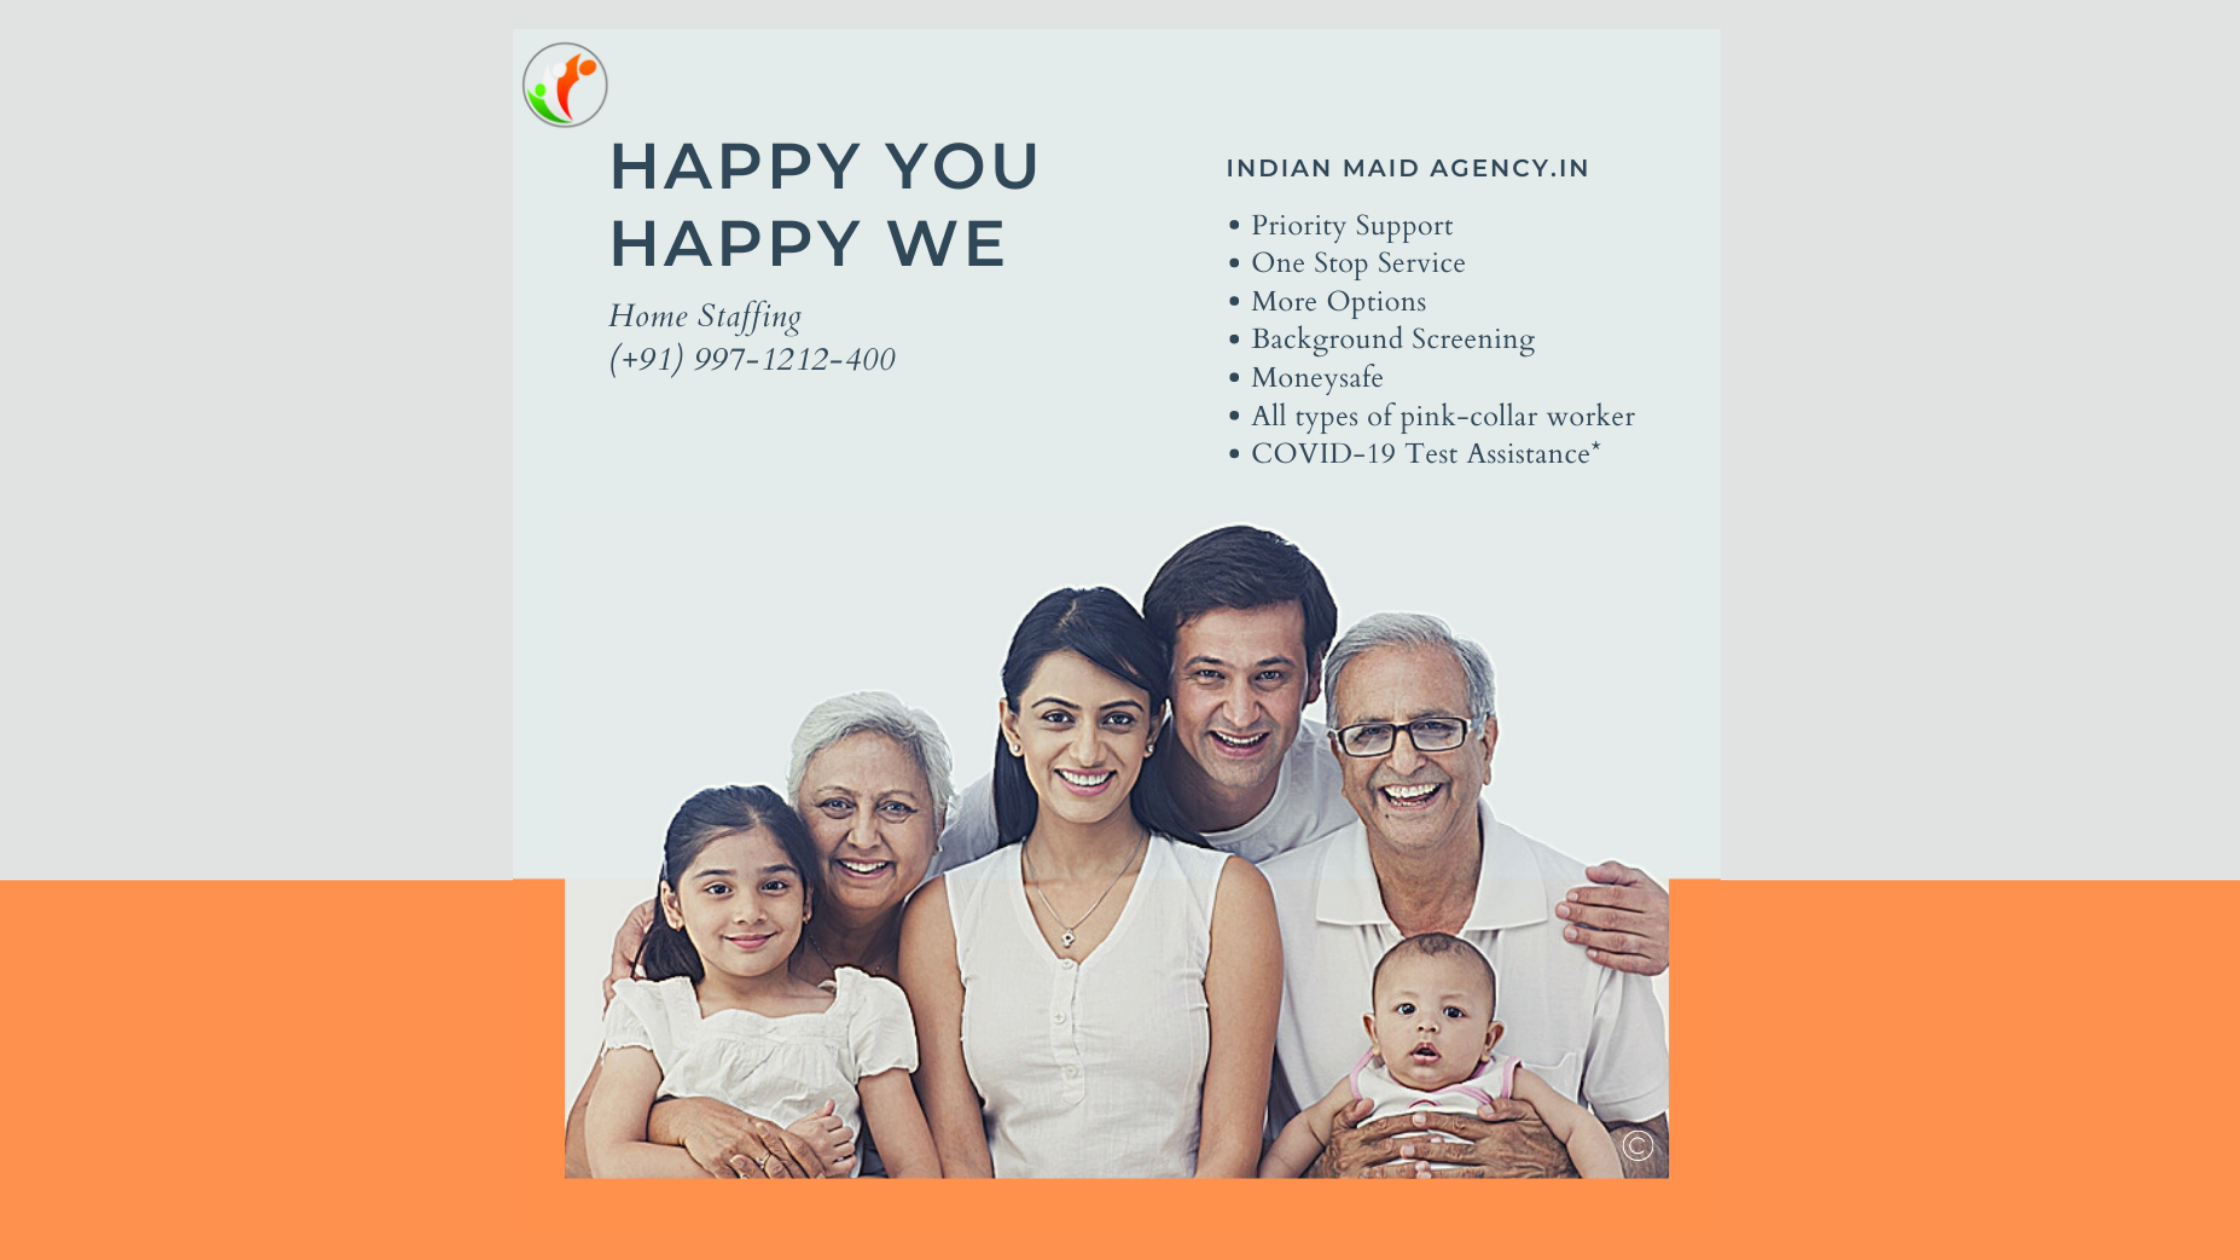 Leading Indian Maid Agency (IMA) offers unique & trustworthy services for all household needs